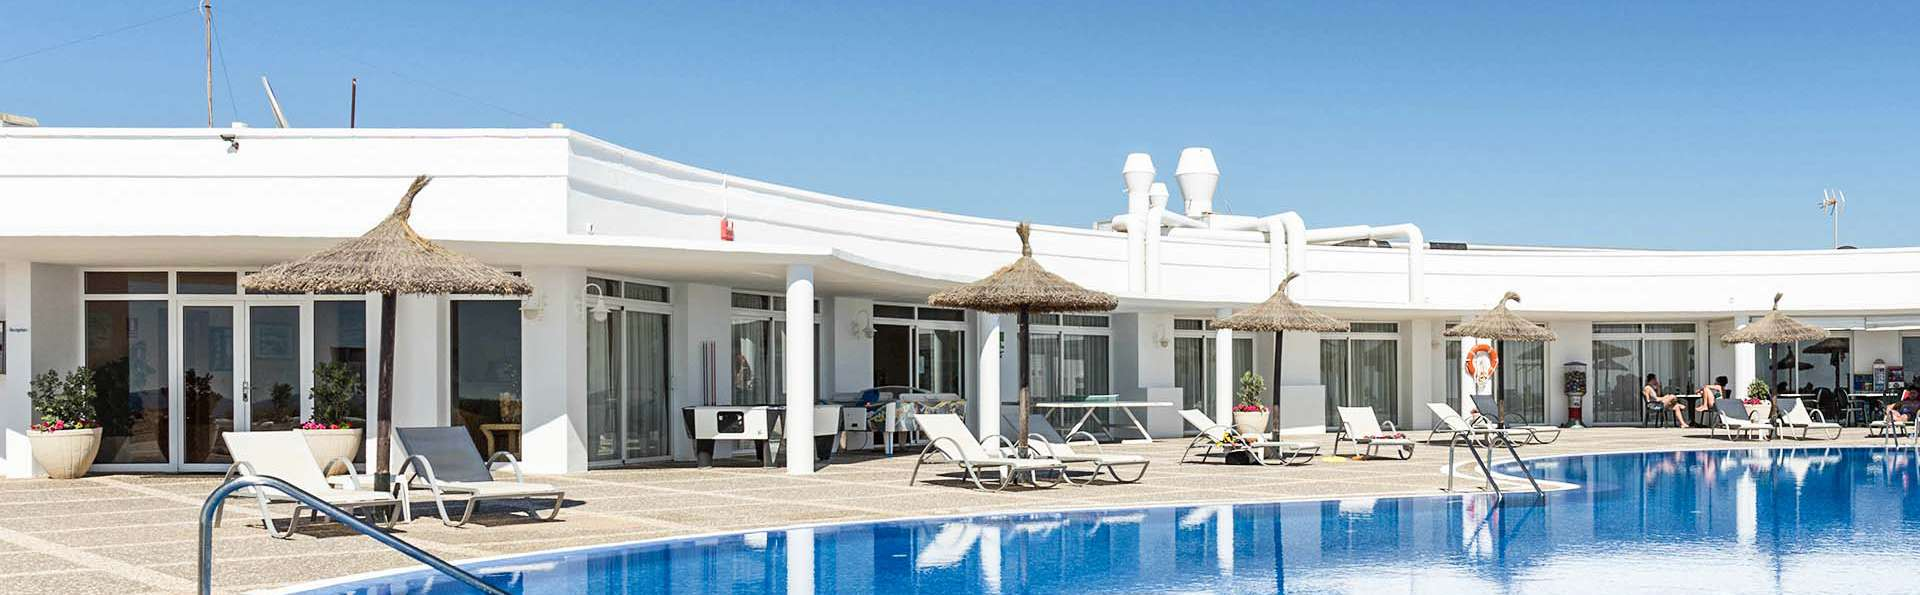 RVHotels Sea Club Menorca - EDIT_RV_Hotels_SeaClub_Menorca_02.jpg